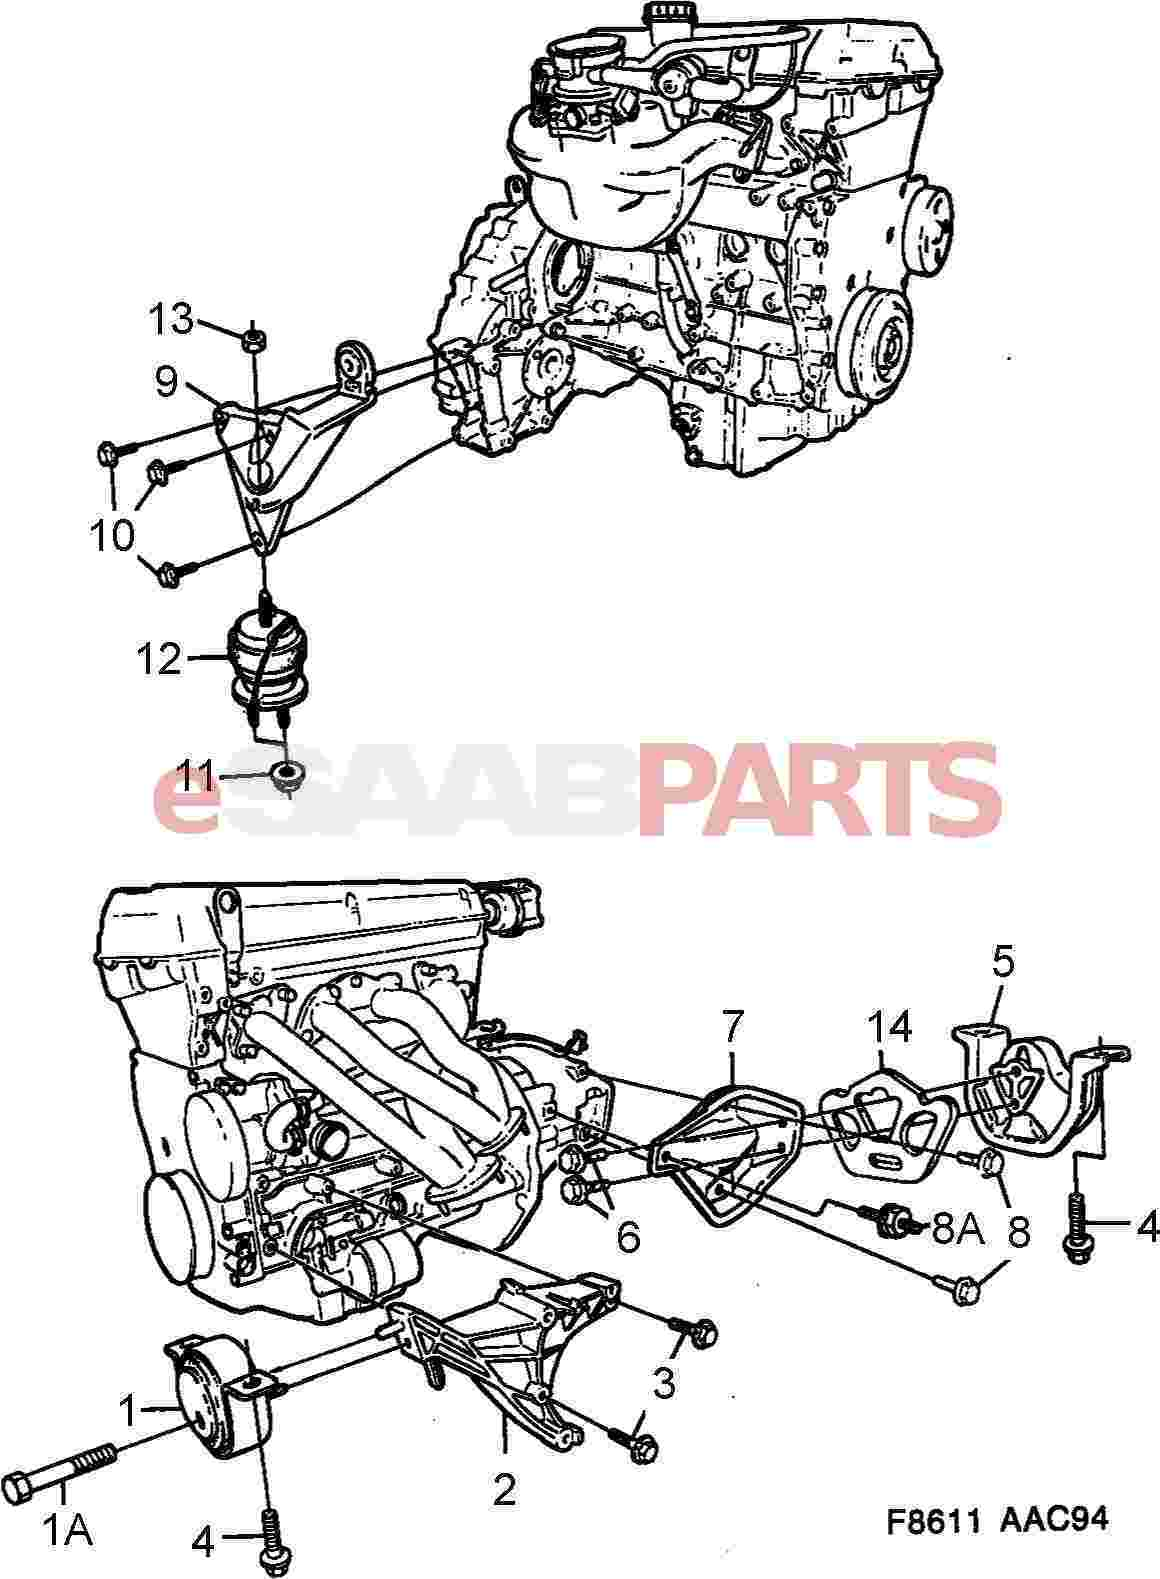 4671715  saab engine mountings